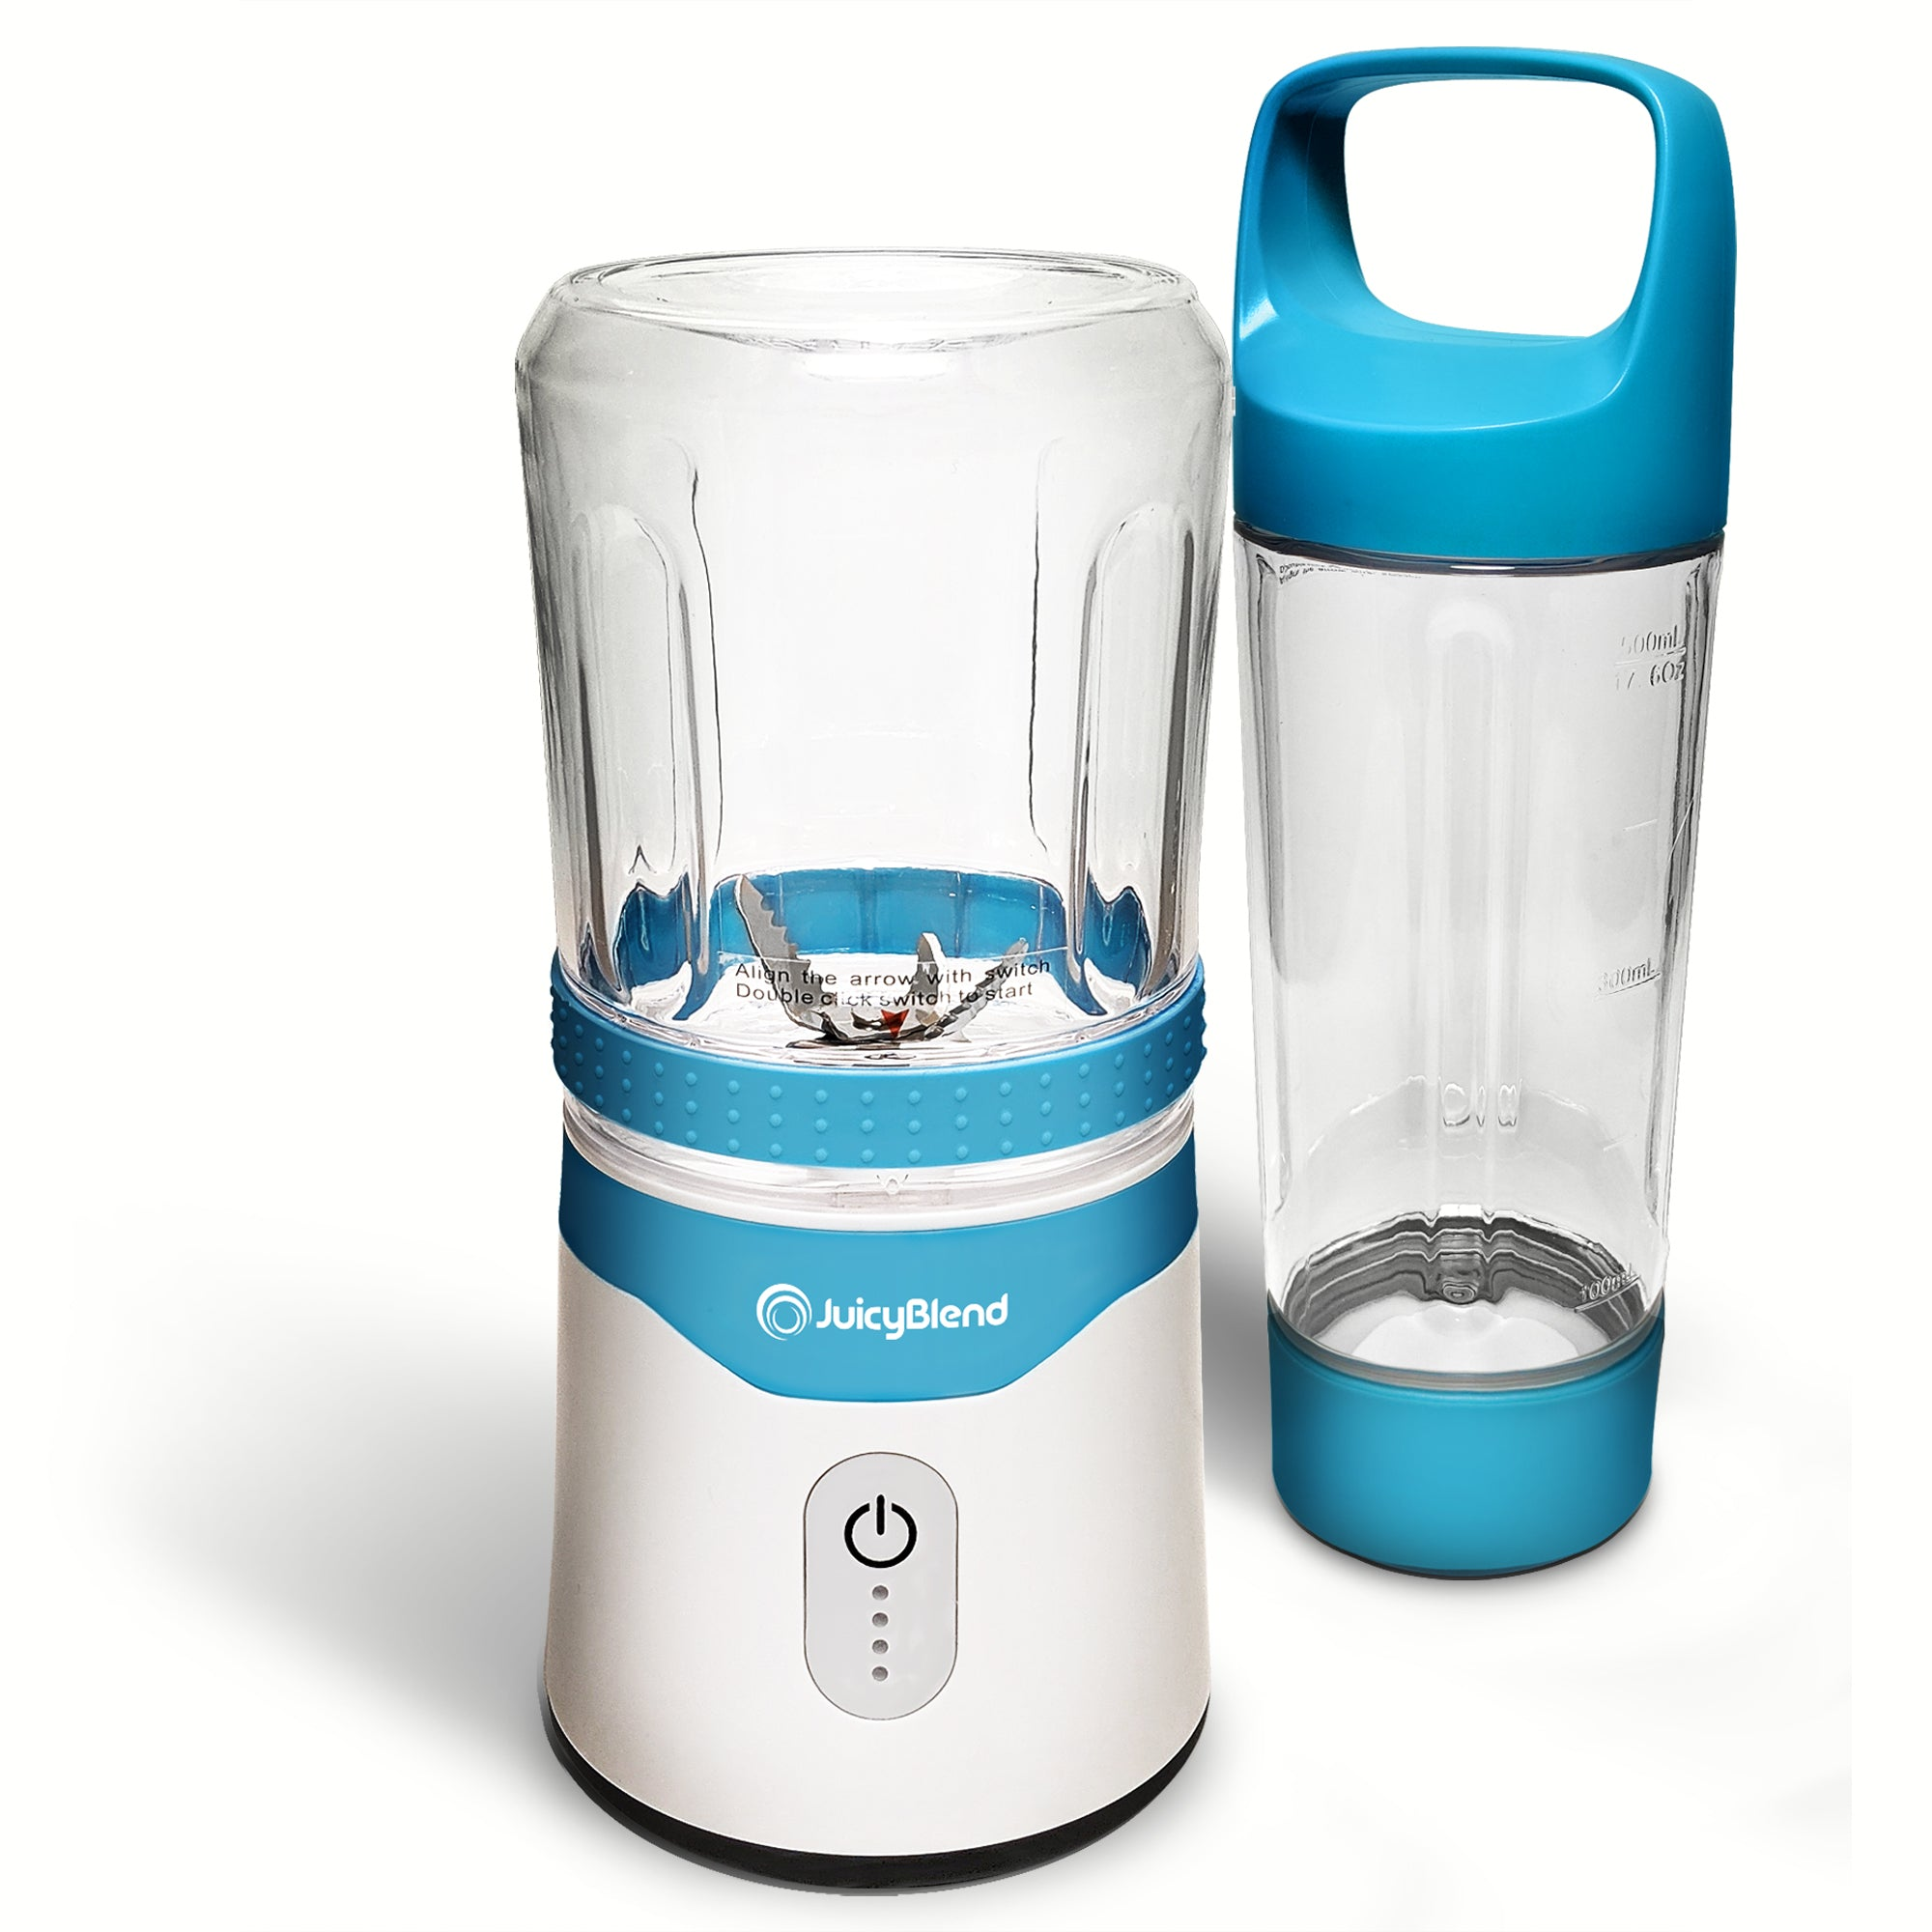 JuicyBlend light blue and white portable blender with 500ML clear plastic jar with light blue lid and 300ML clear plastic jar with blender motor base.